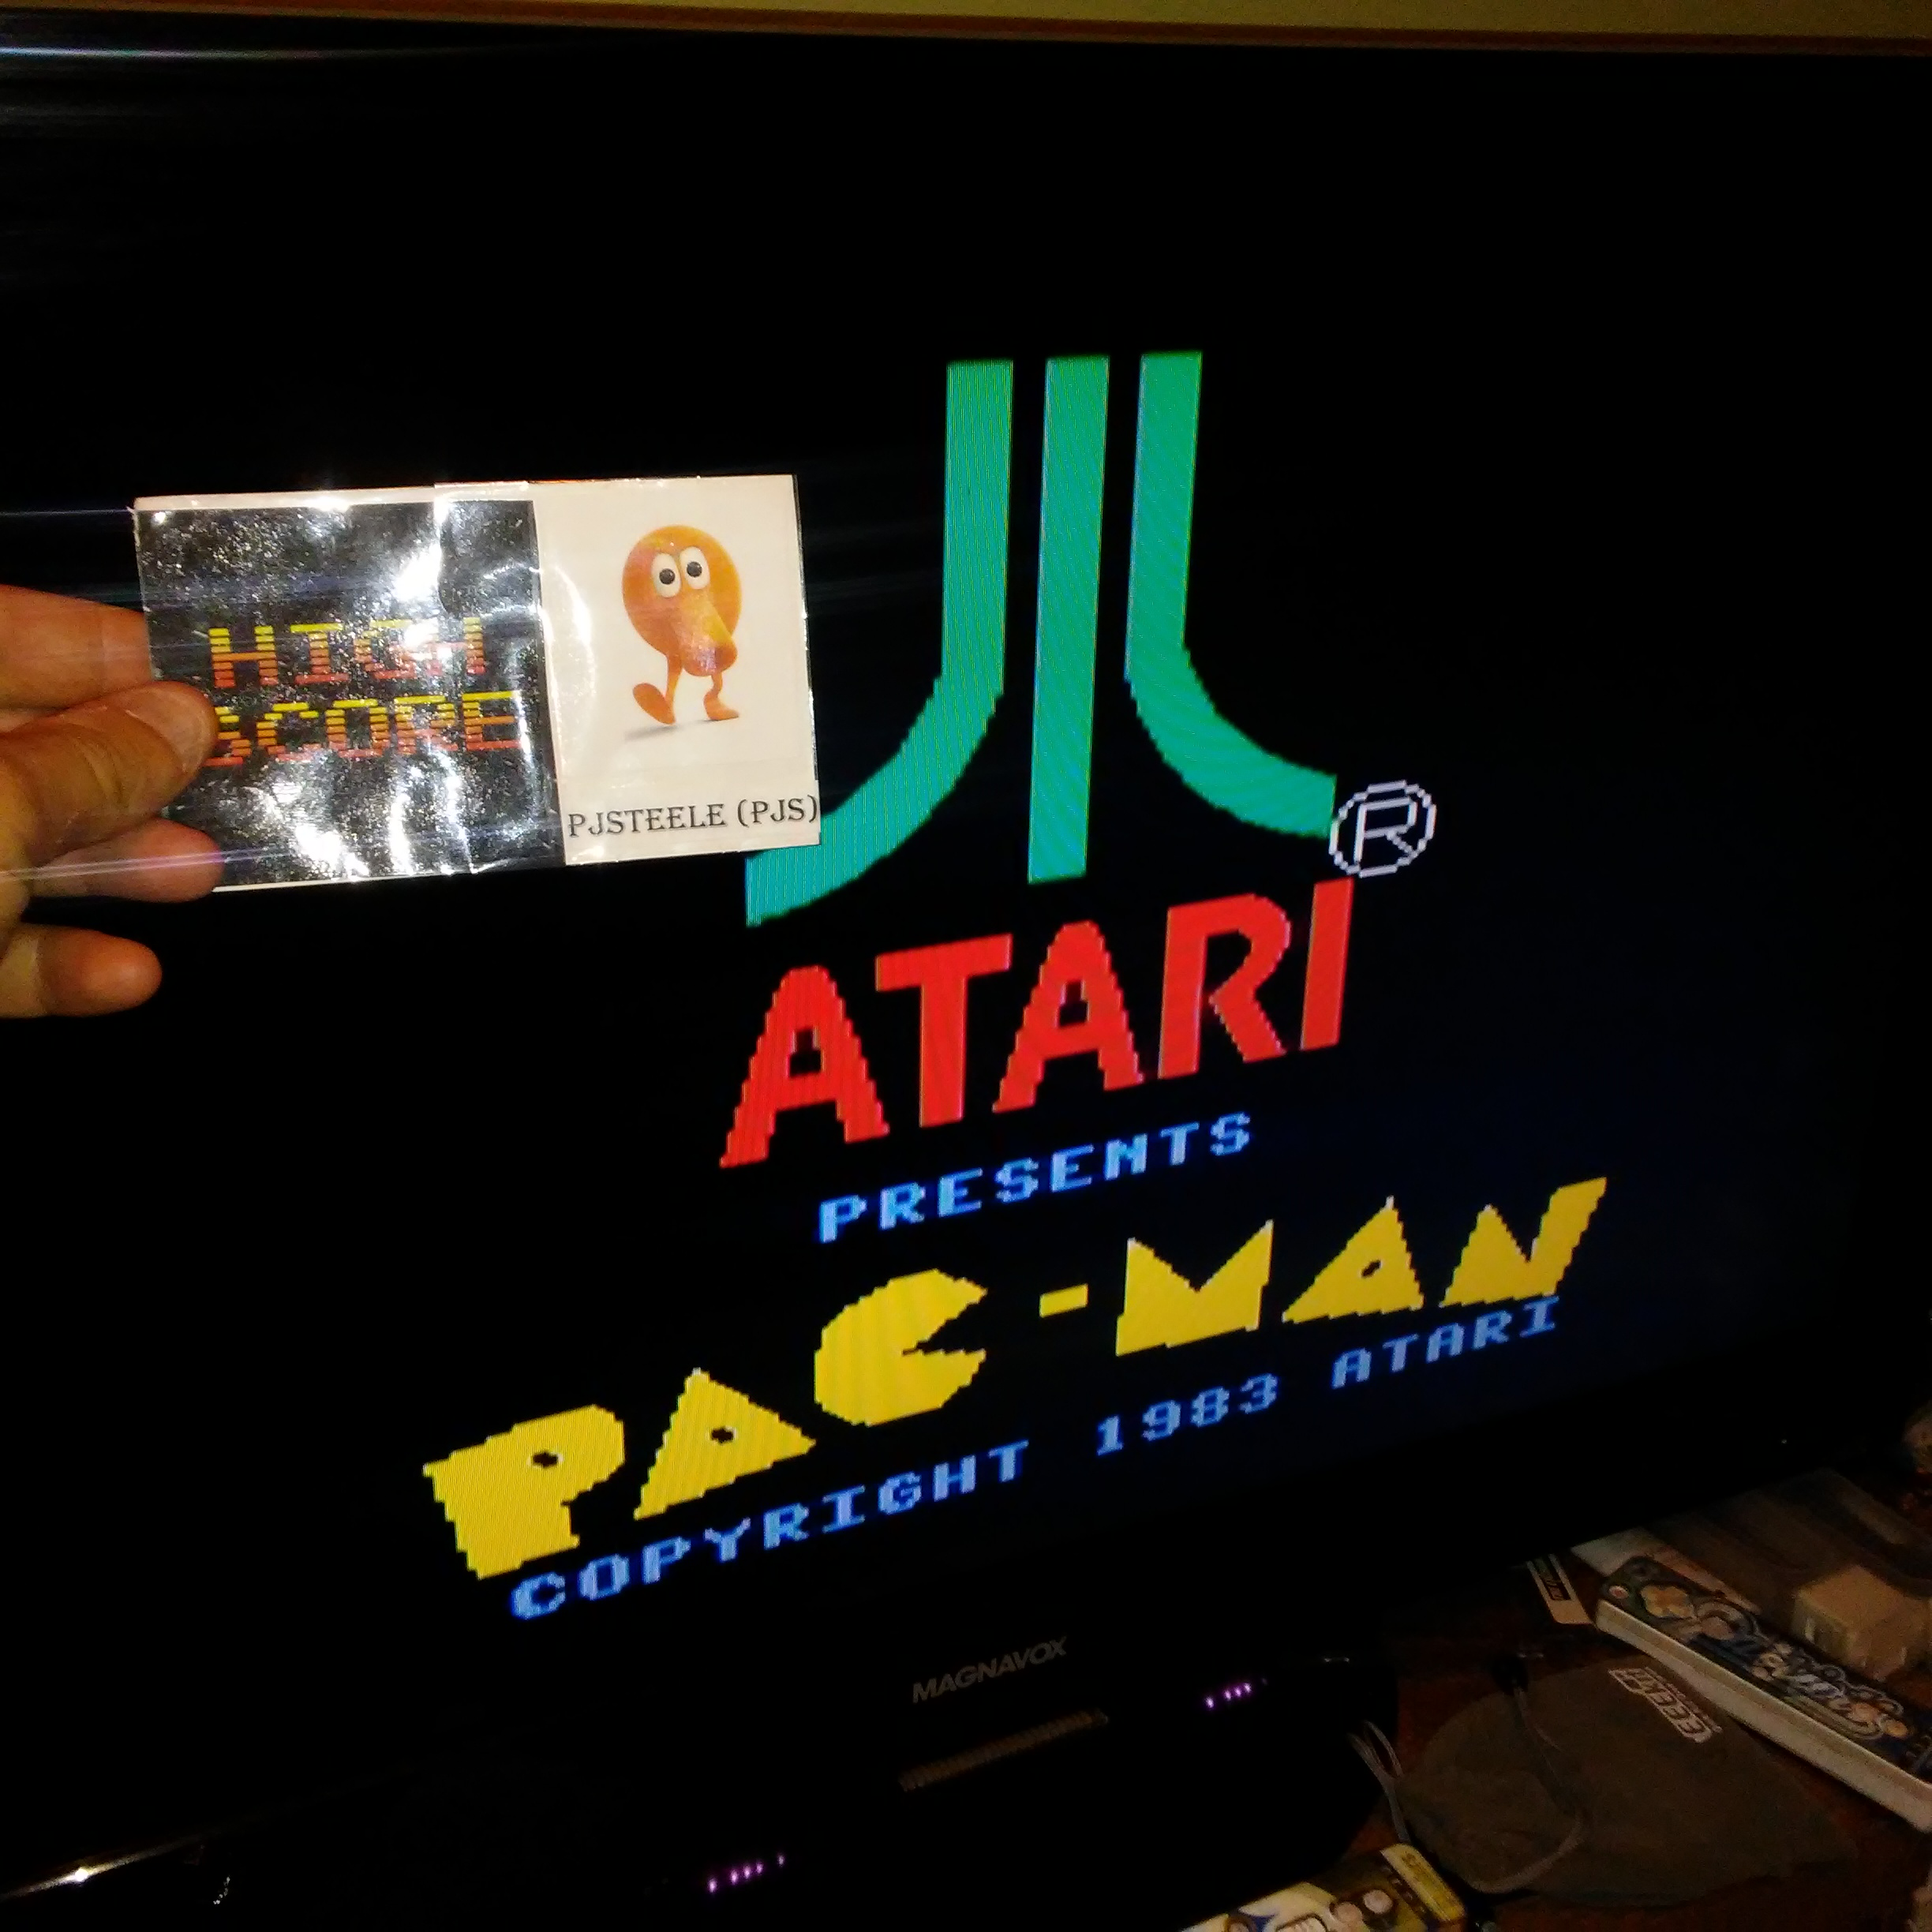 Pjsteele: Pac-Man [Atari] [Easy] (Colecovision Emulated) 43,970 points on 2017-10-15 11:32:21